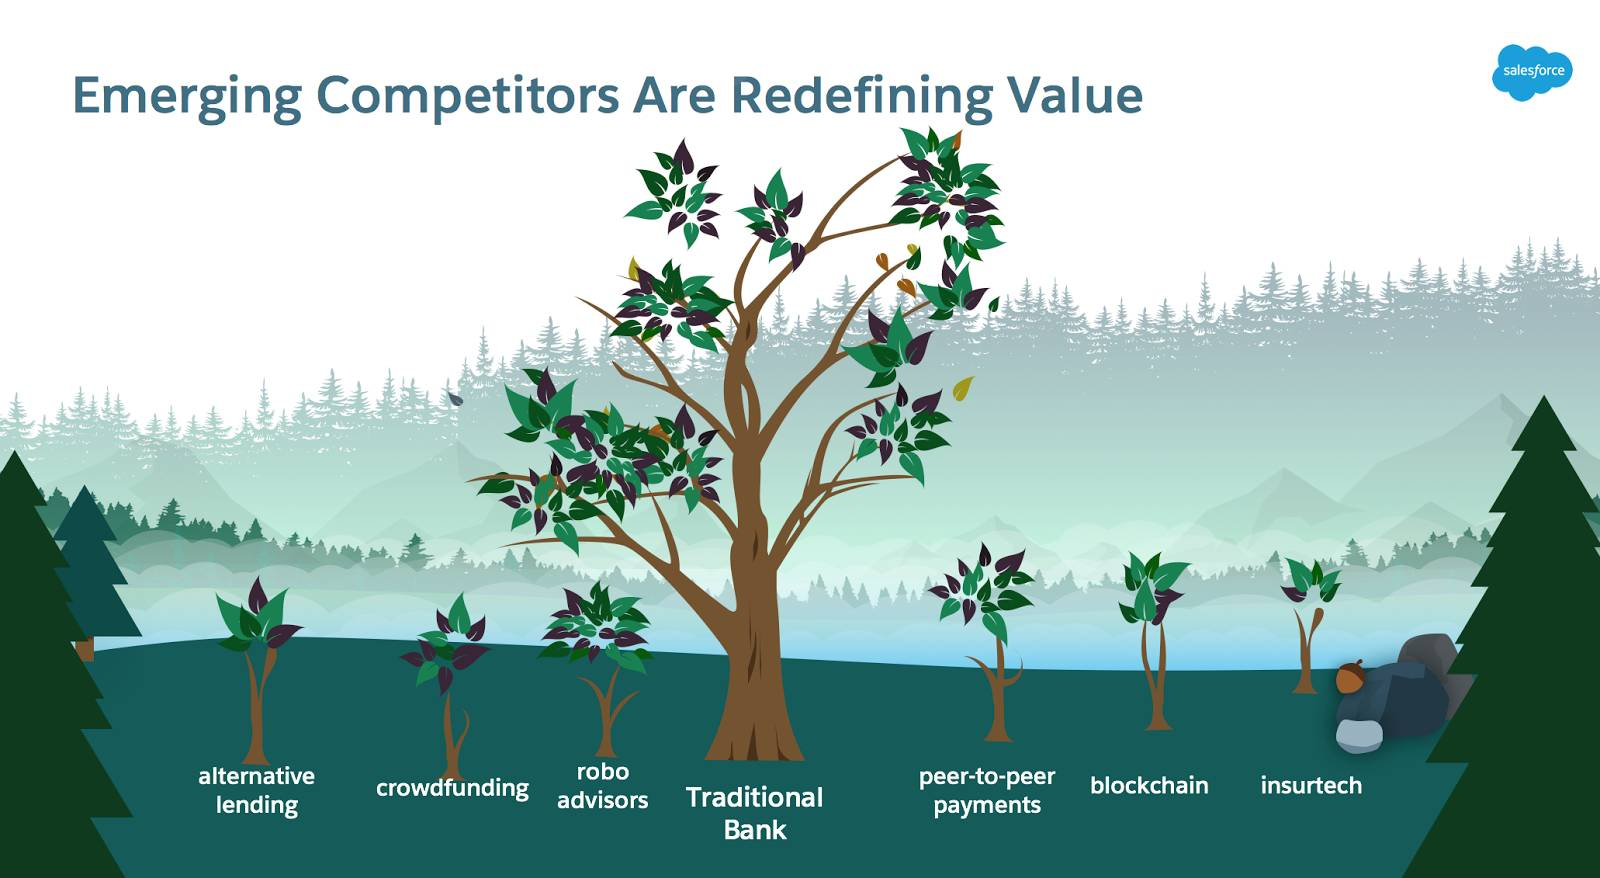 Image illustrating how fintechs (represented as several small trees sprouting) are emerging to challenge traditional banks (represented as one large tree)